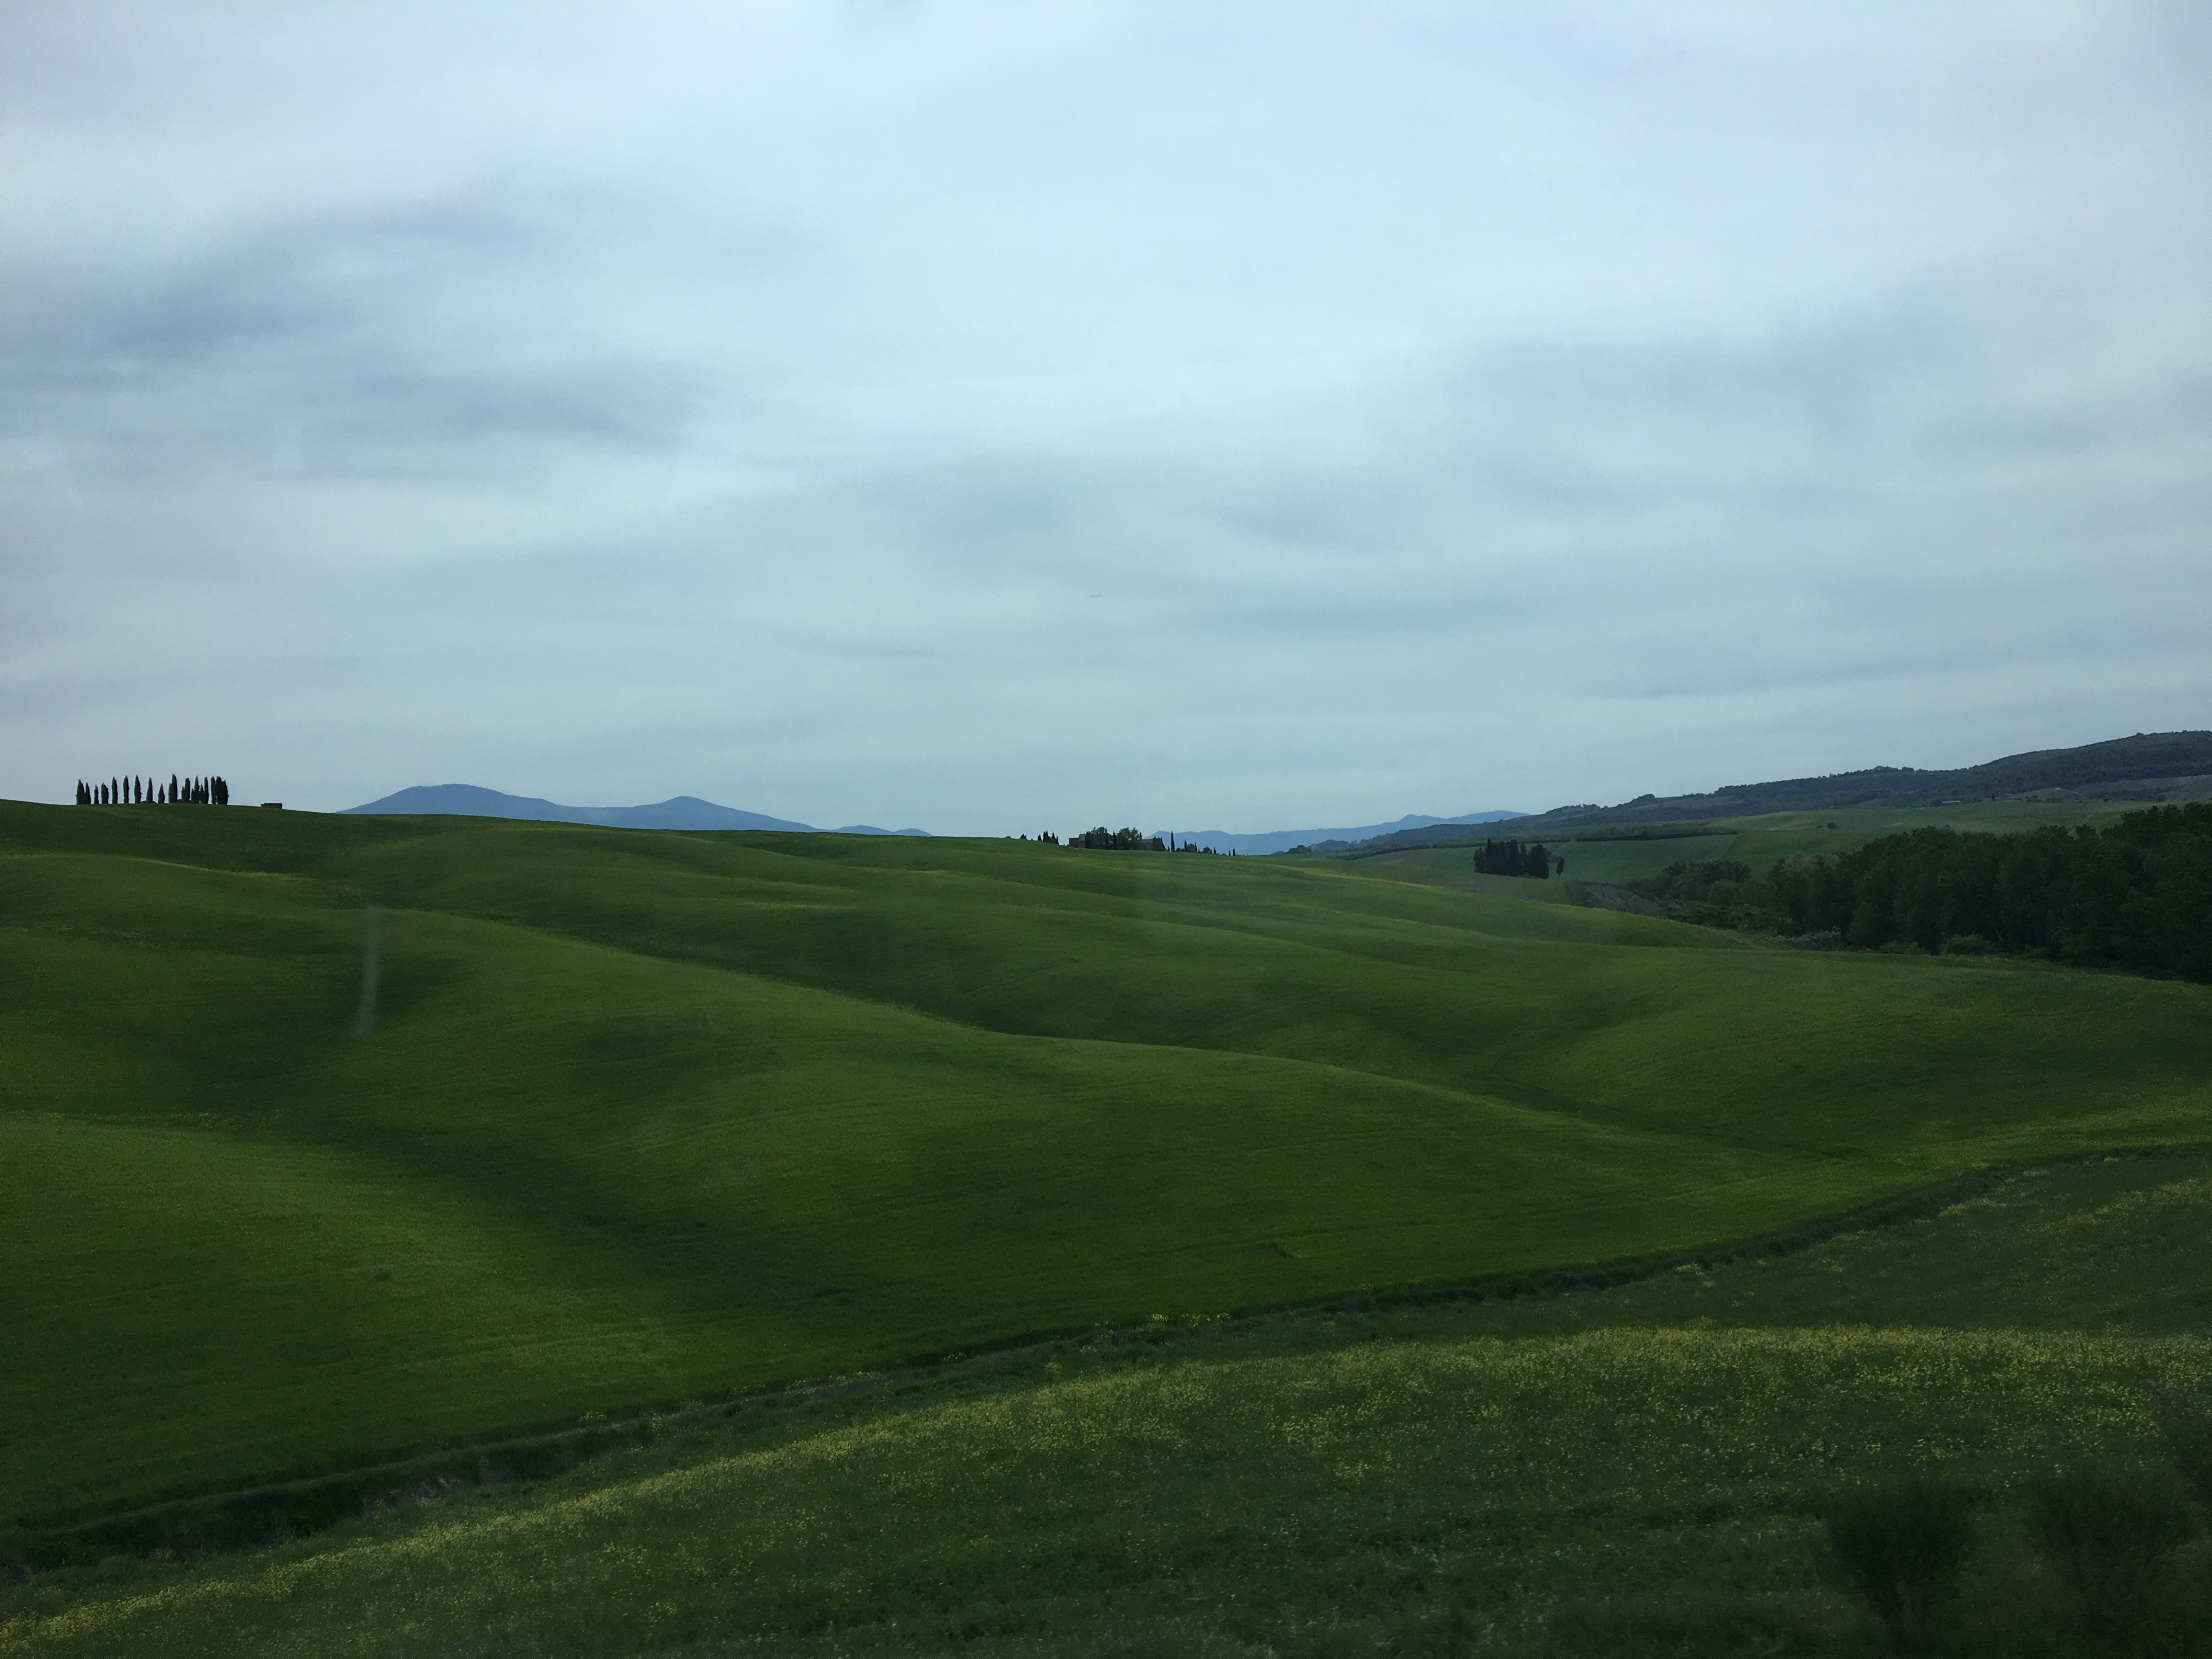 Travel: Tuscany – Montepulciano, Montalcino and Val d'Orcia Wine Roads